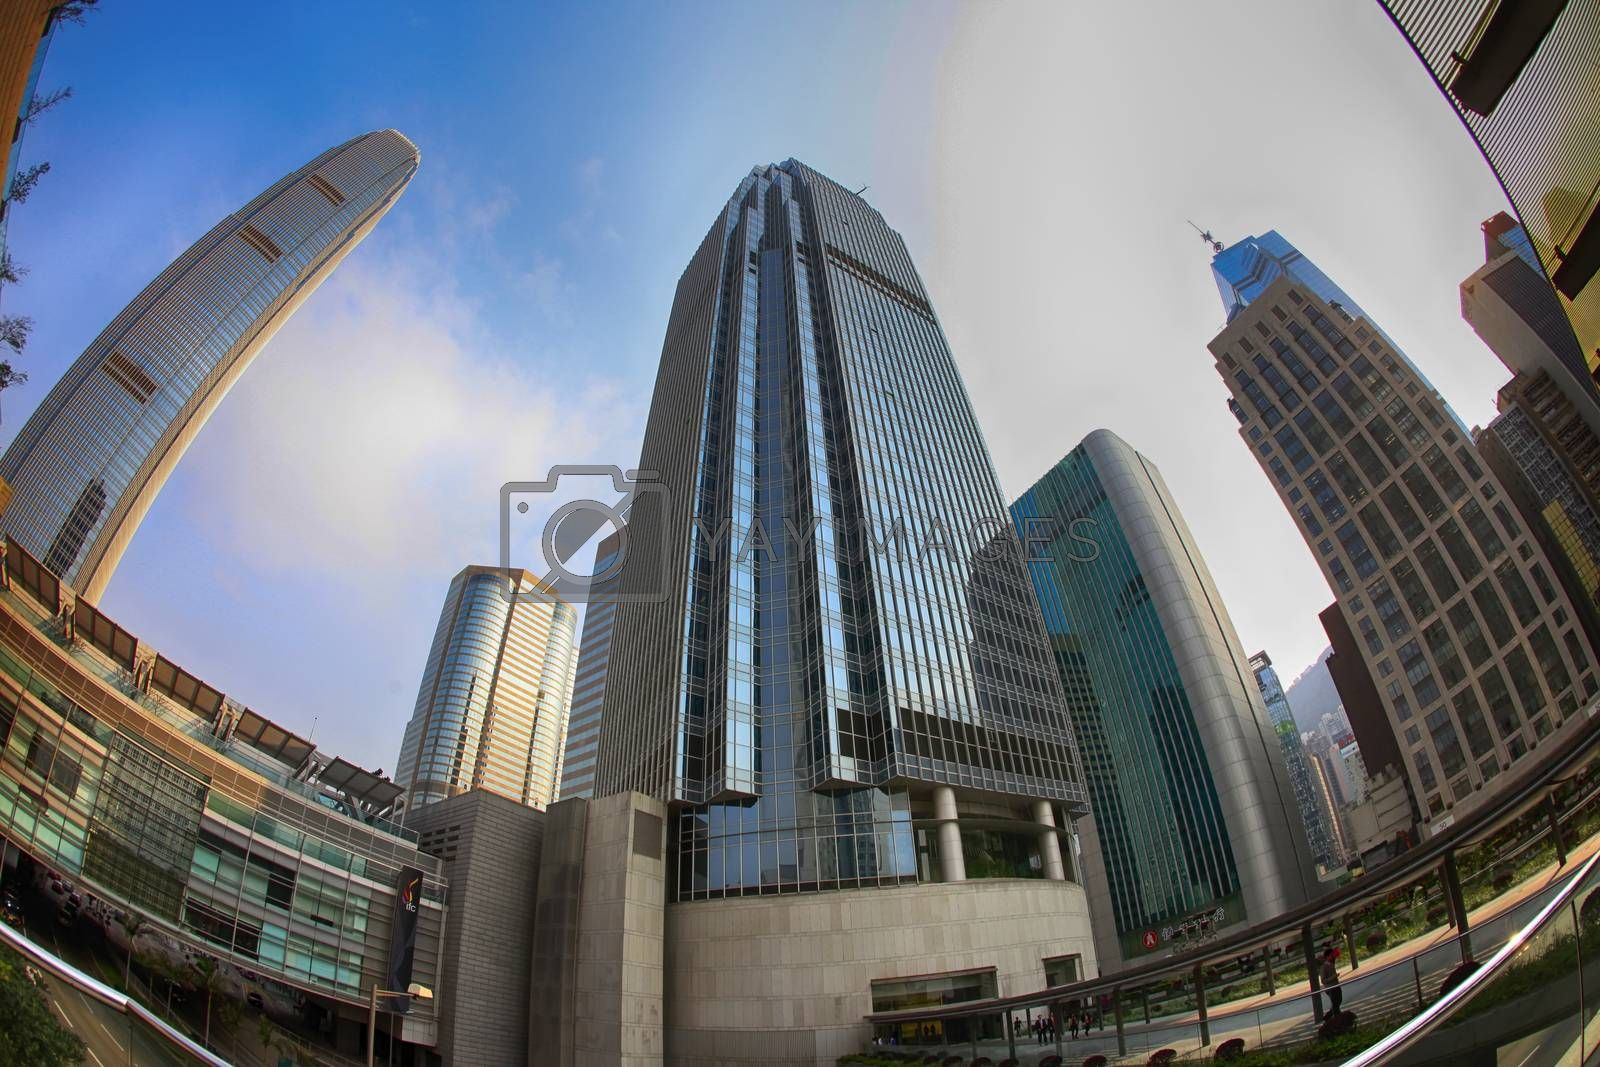 Hong Kong, Hong Kong S.A.R. - March 28, 2012: The International Finance Centre is a skyscraper and an integrated commercial development on the waterfront of Hong Kong's Central District.